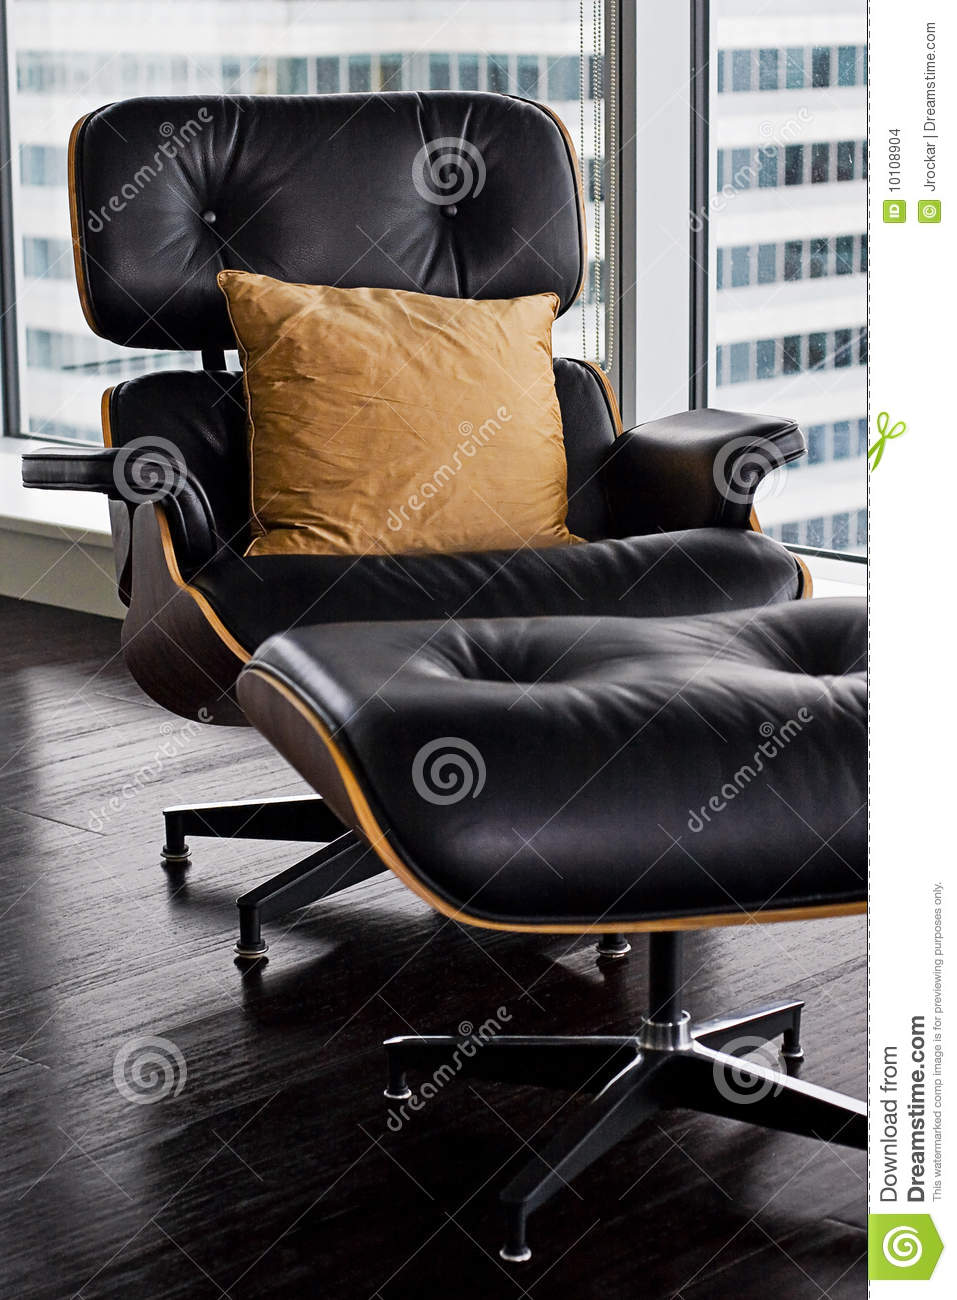 fauteuil de cr ateur images stock image 10108904. Black Bedroom Furniture Sets. Home Design Ideas